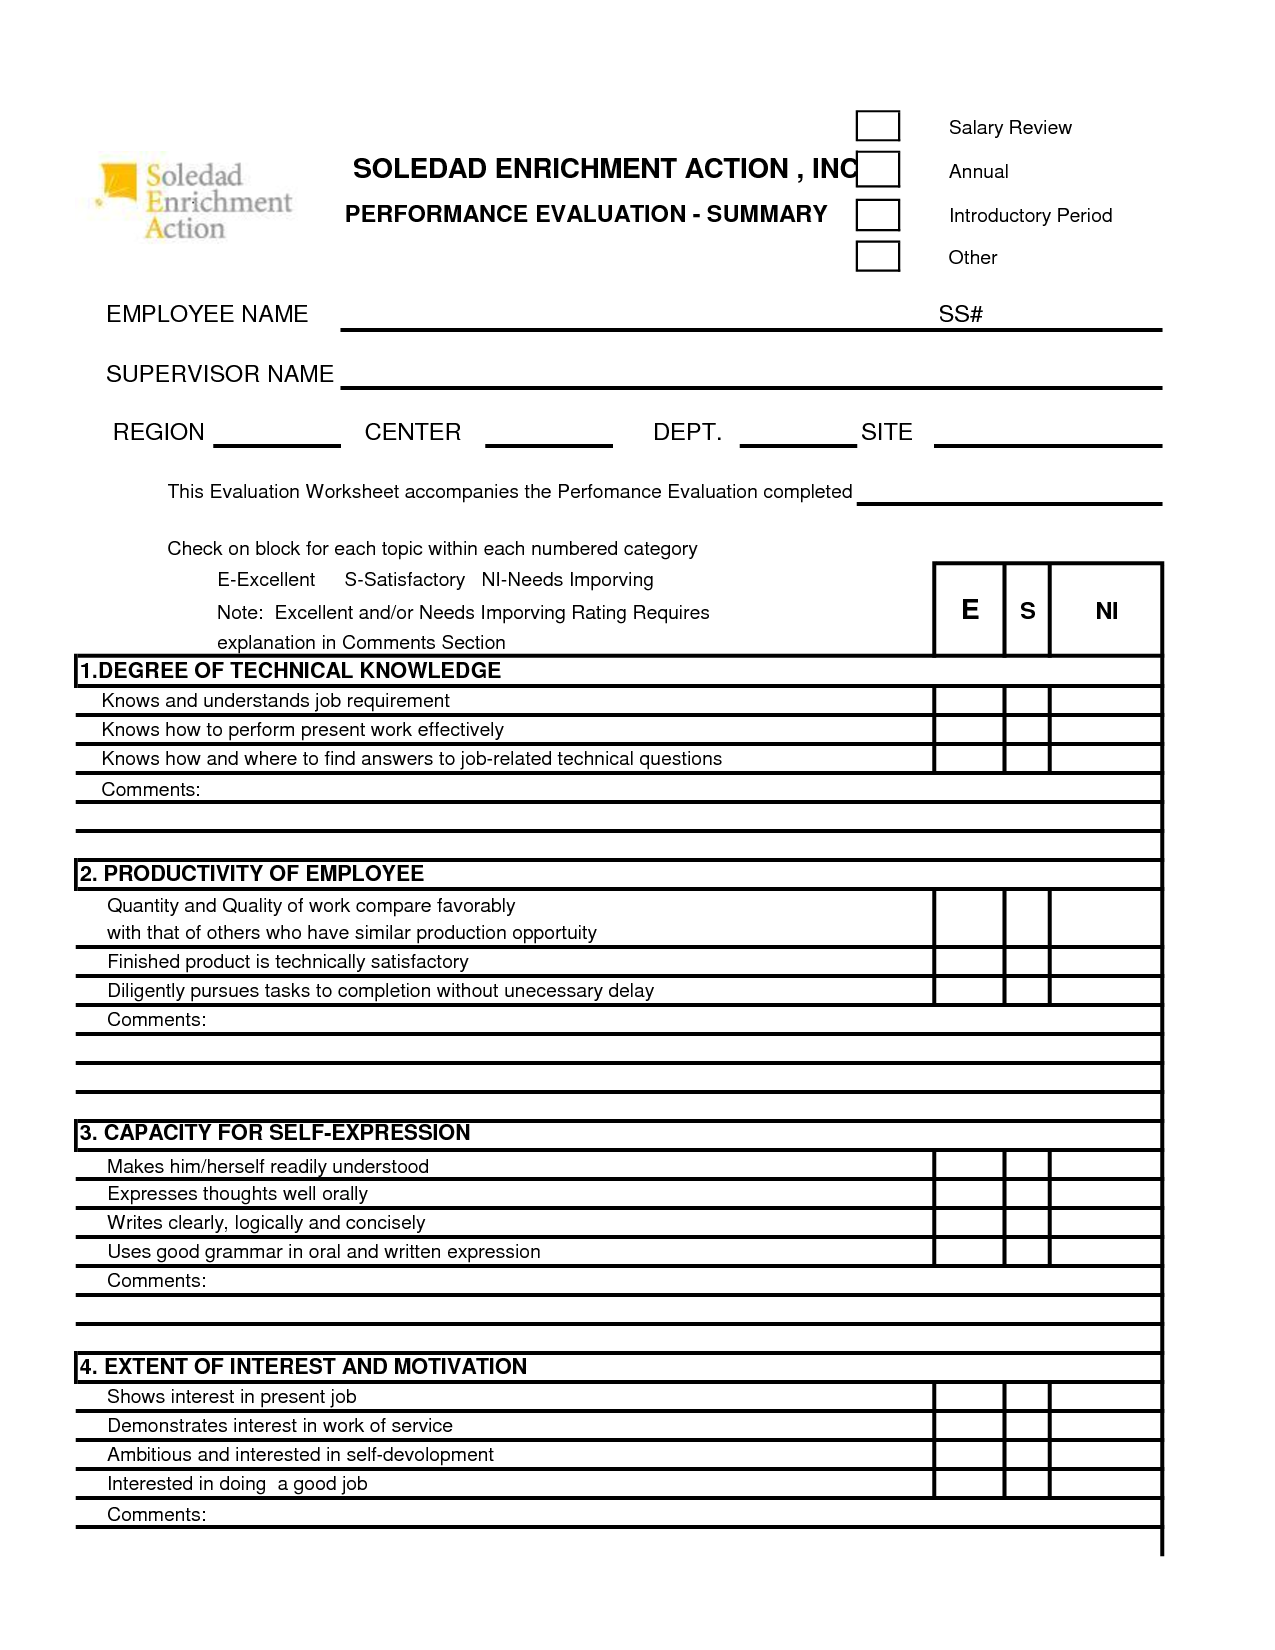 Free 360 performance appraisal form google search the for 360 performance evaluation template